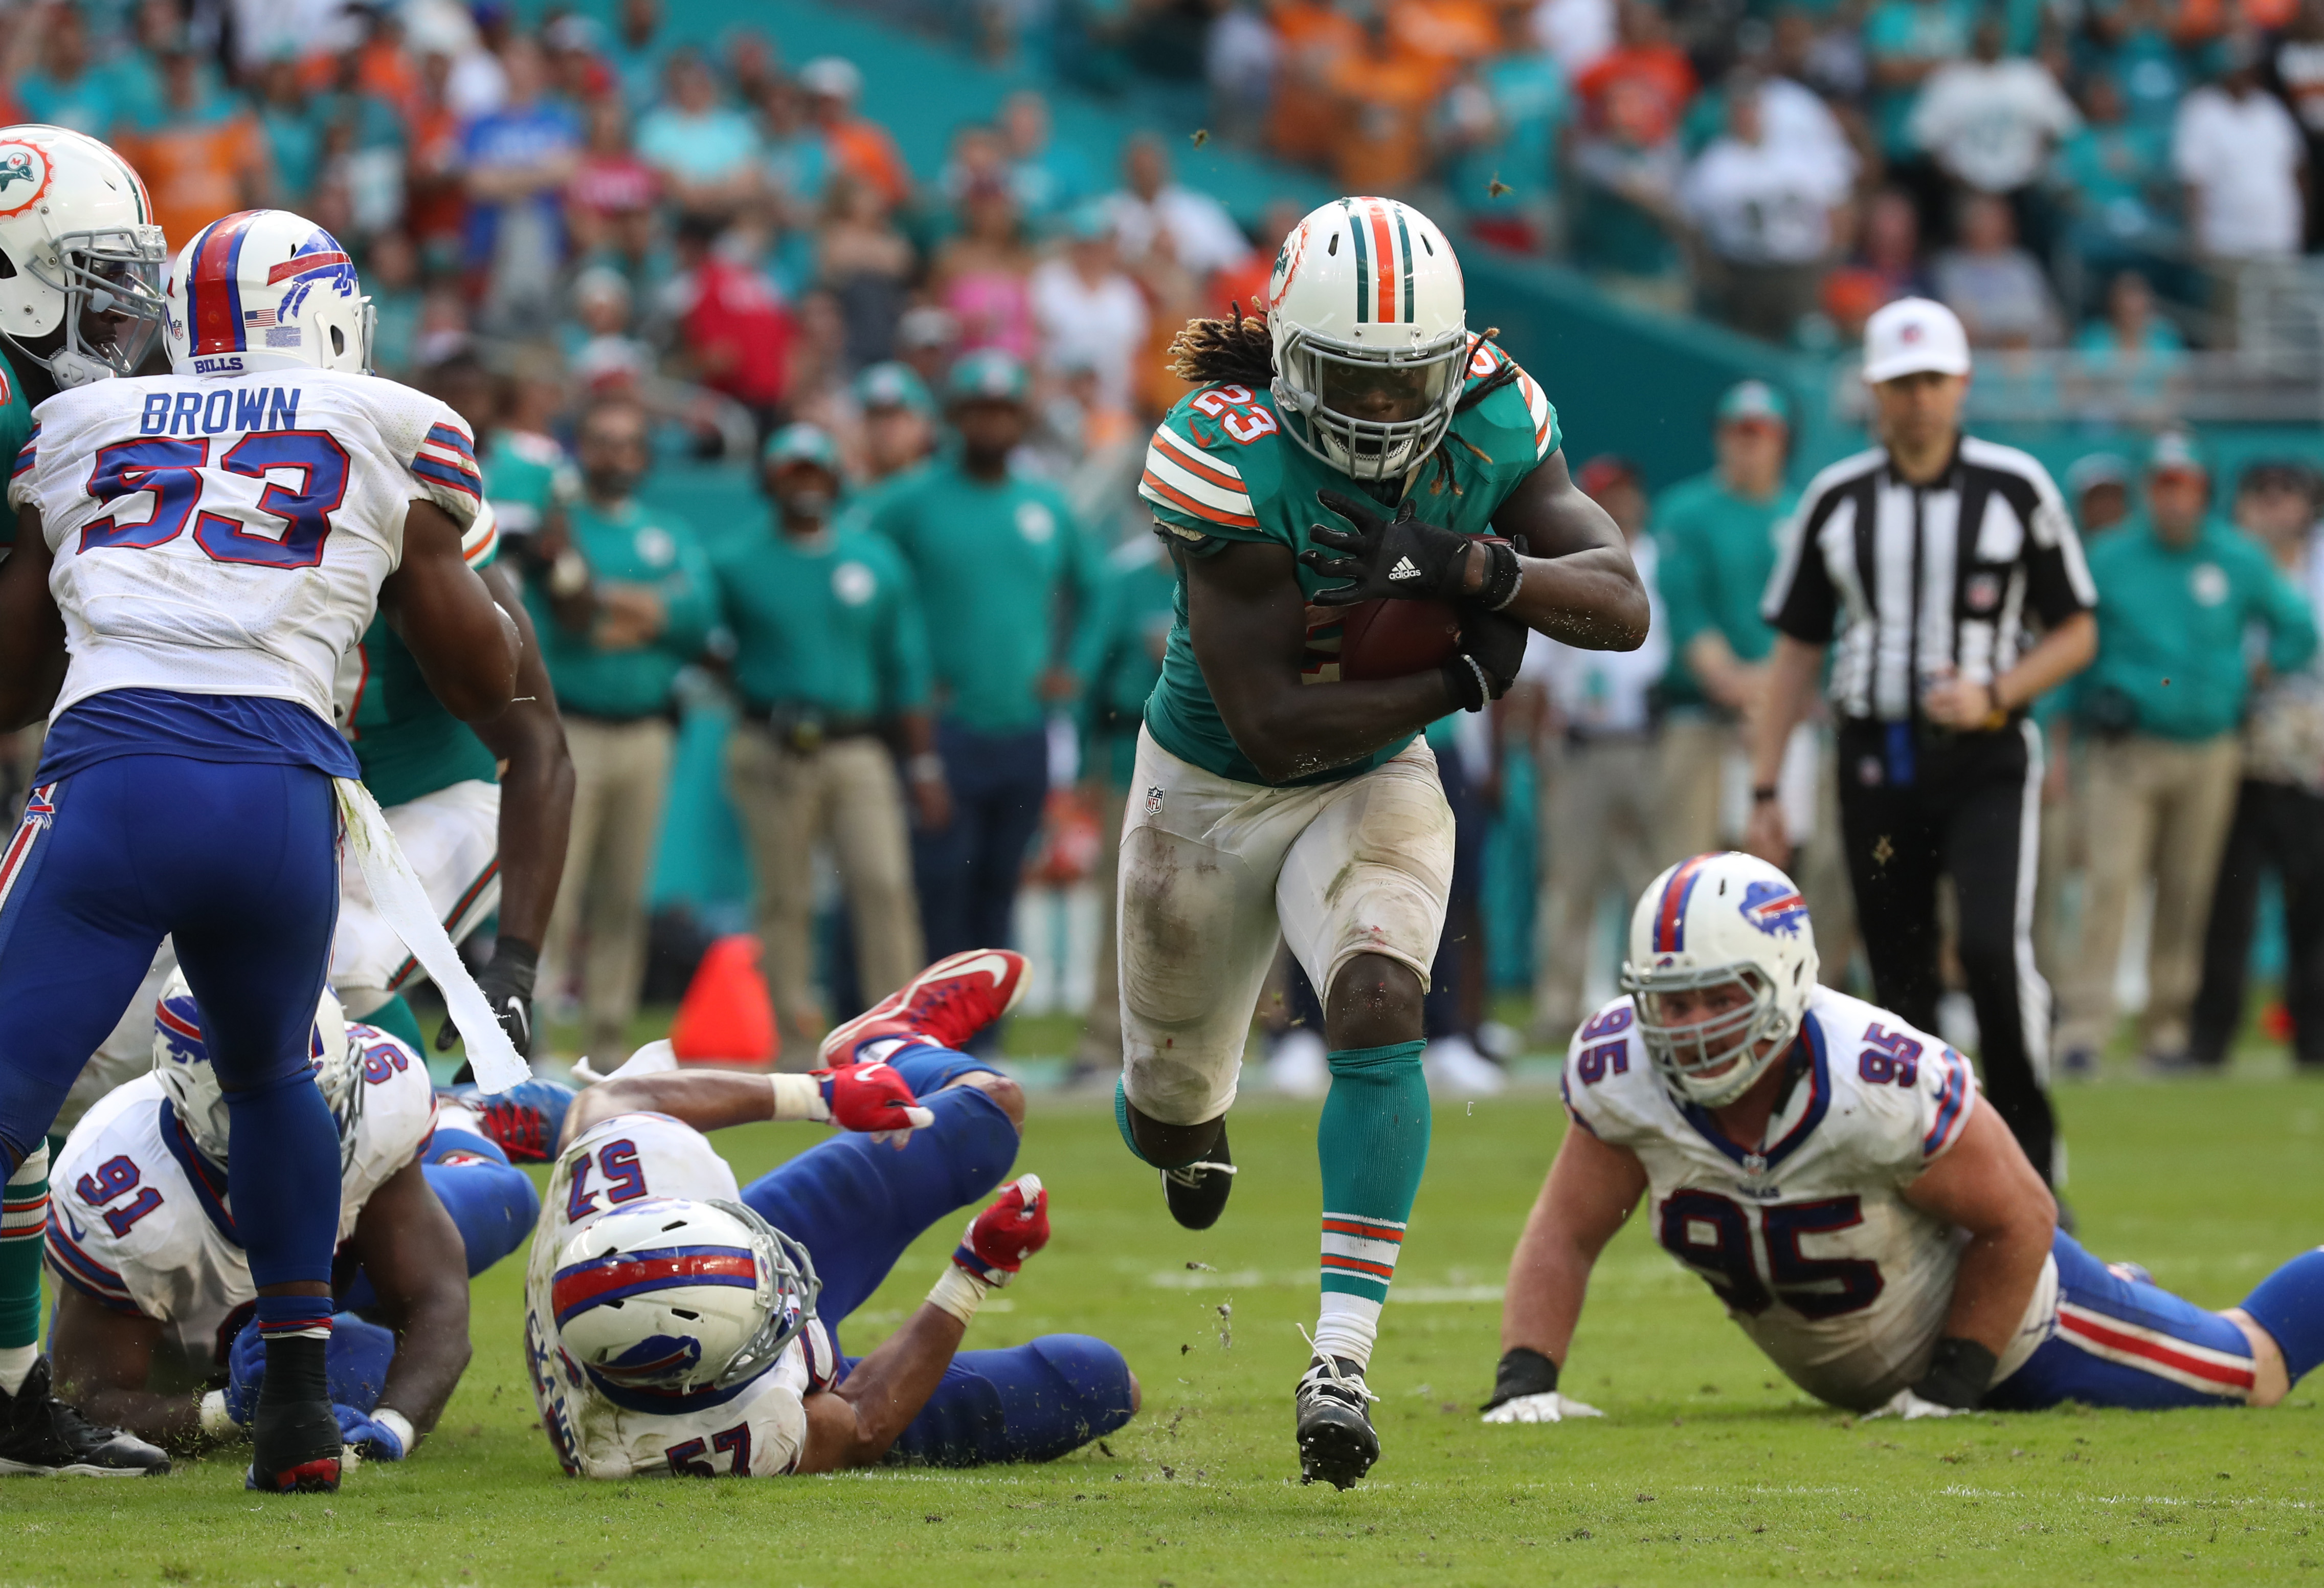 Miami Dolphins running back Jay Ajayi (23) beats Buffalo Bills defensive end Kyle Williams (95) in the fourth quarter. (James P. McCoy/Buffalo News)